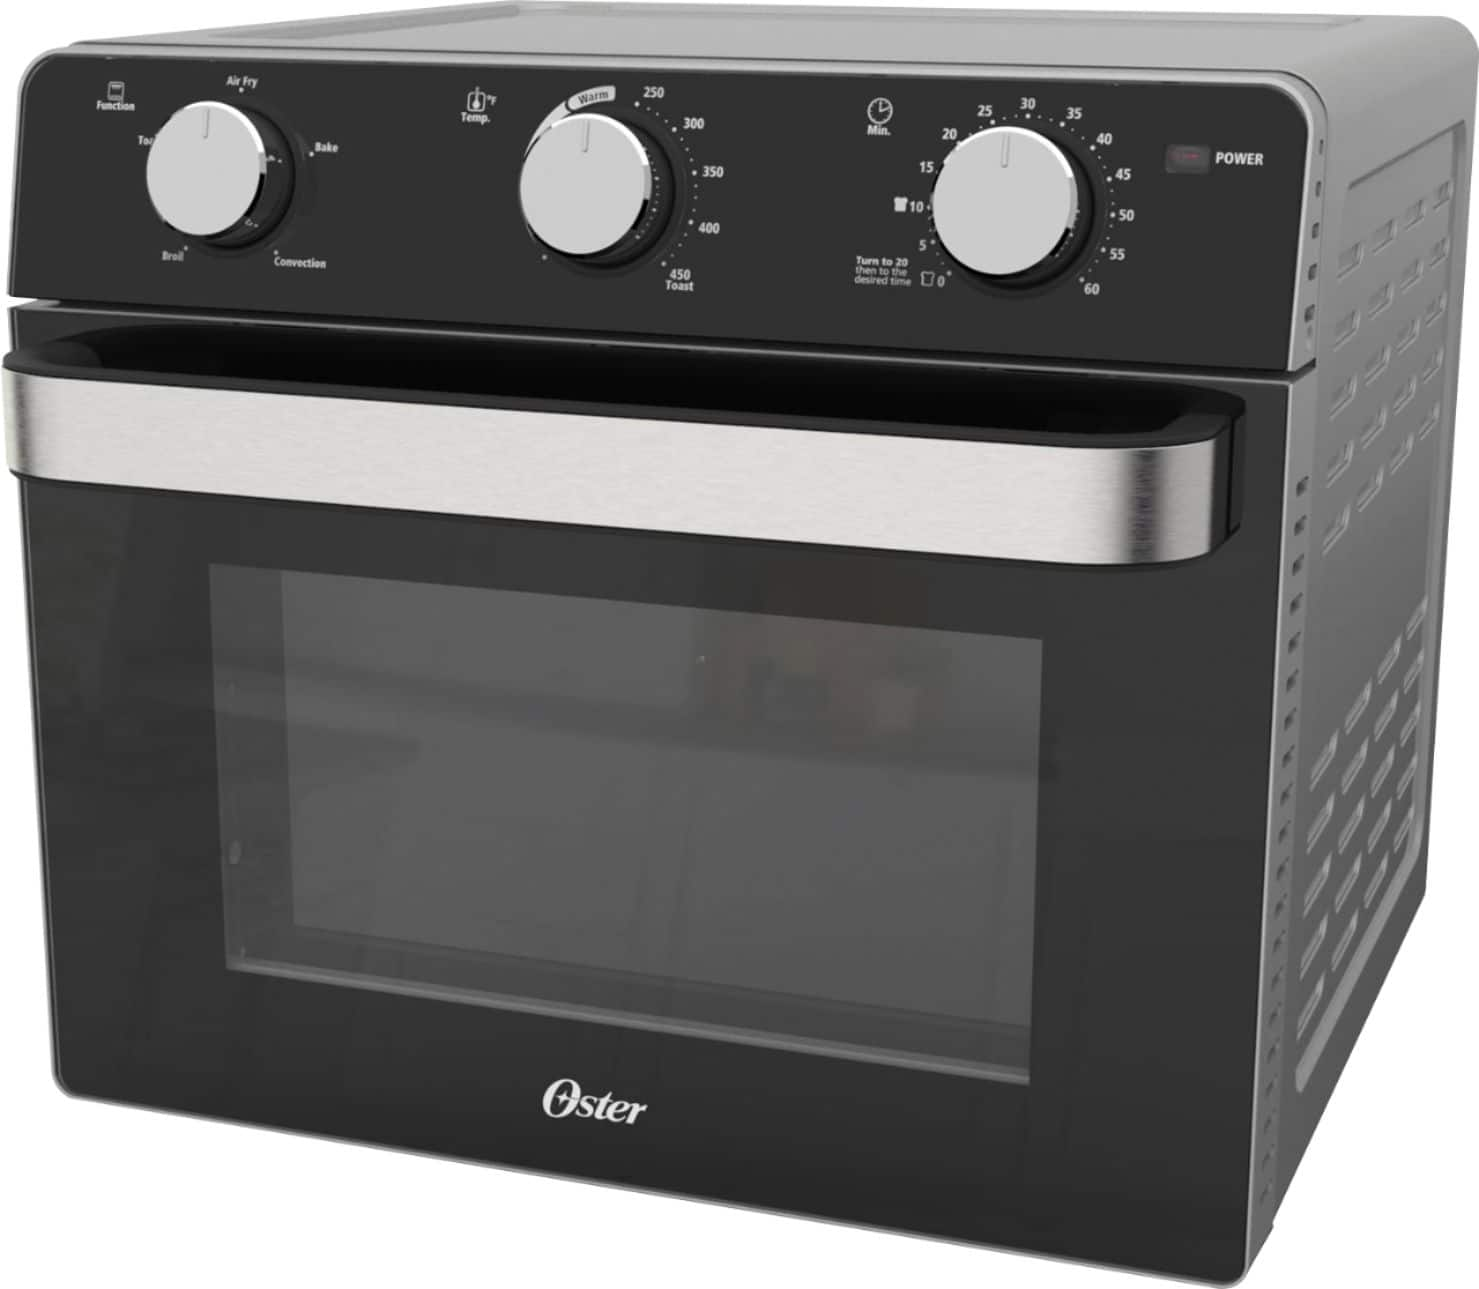 Oster - Air Fryer Toaster Oven - Black $70